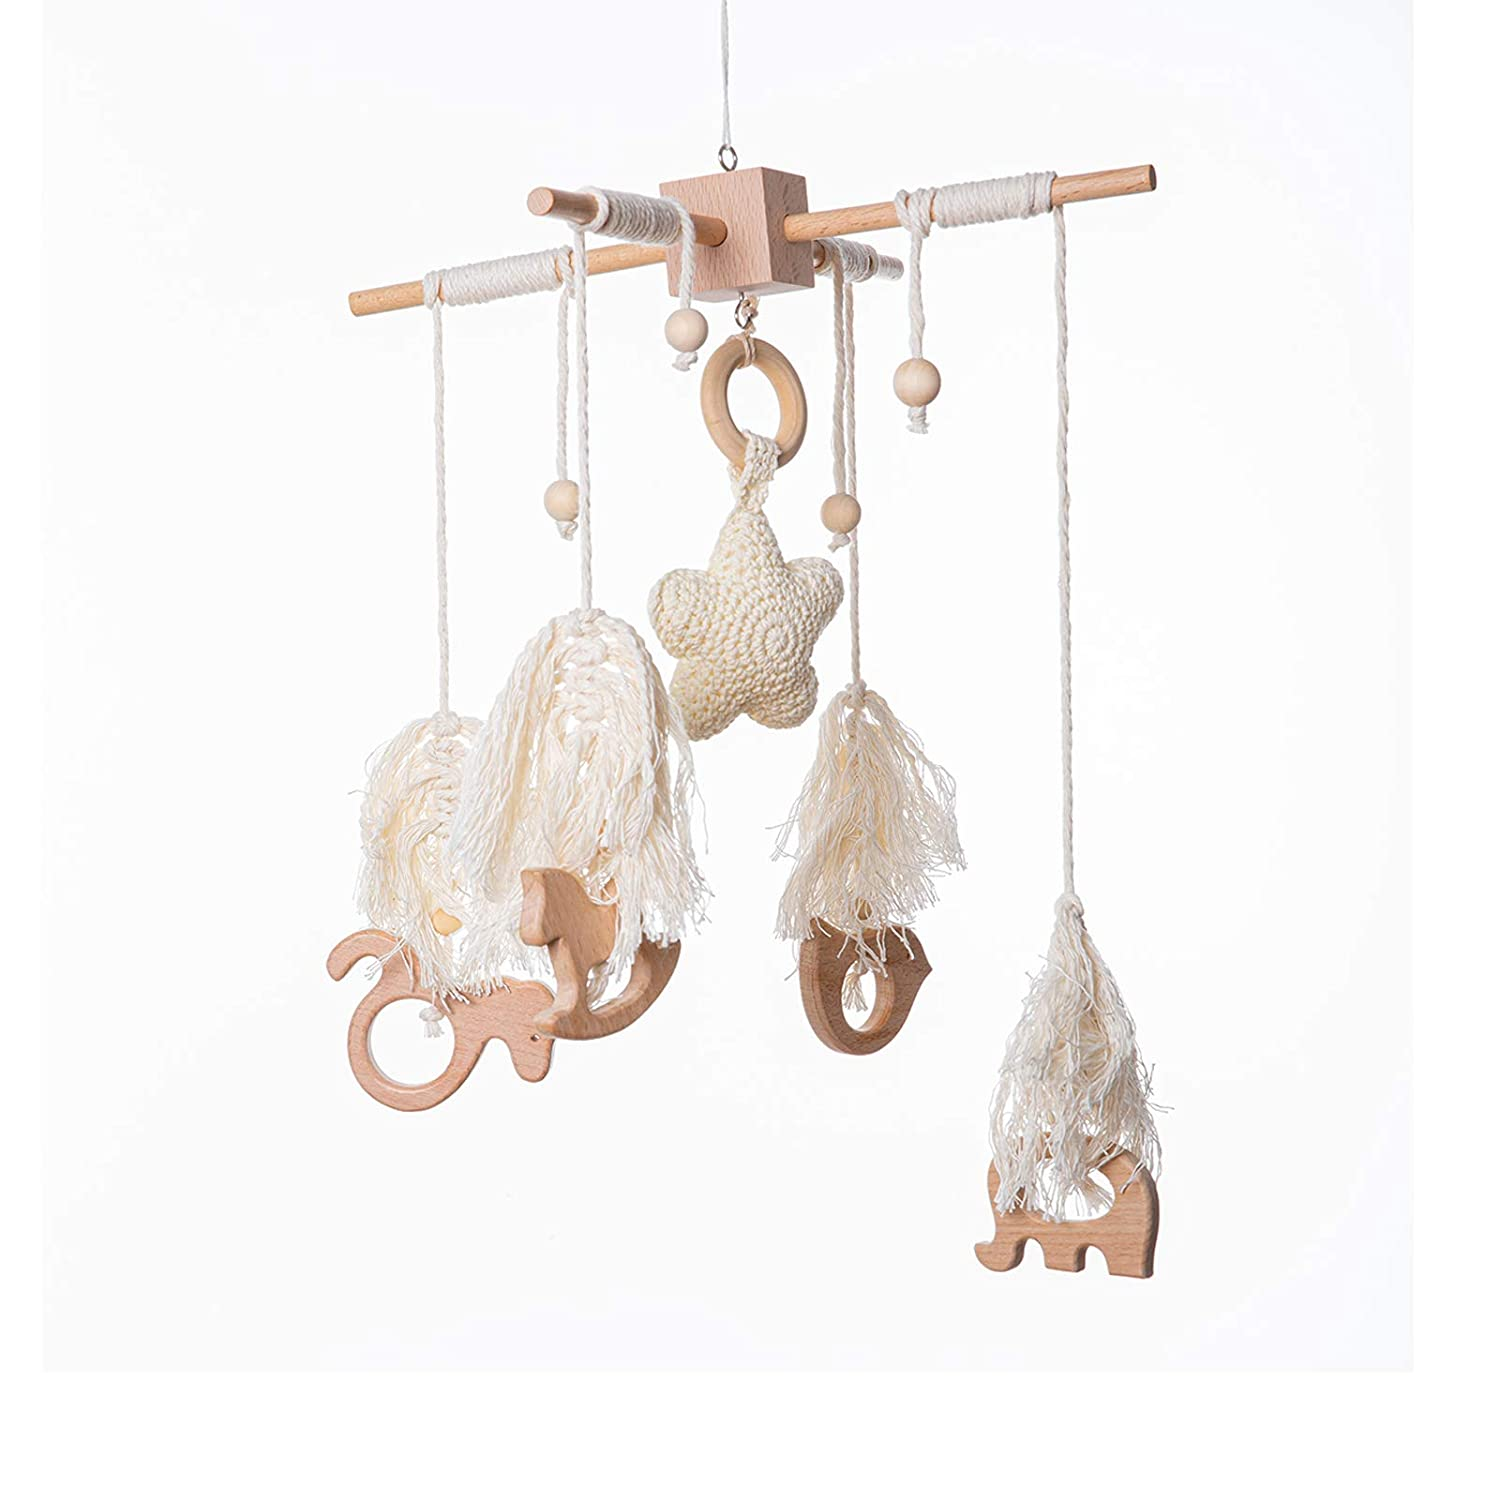 Wooden Baby Crib Mobile Bed Bell with Animals Pendant Nordic Style Handmade Woven Tassels Wind Chime Cot Bassinet Creative Hanging Toys Nursery Room Decor